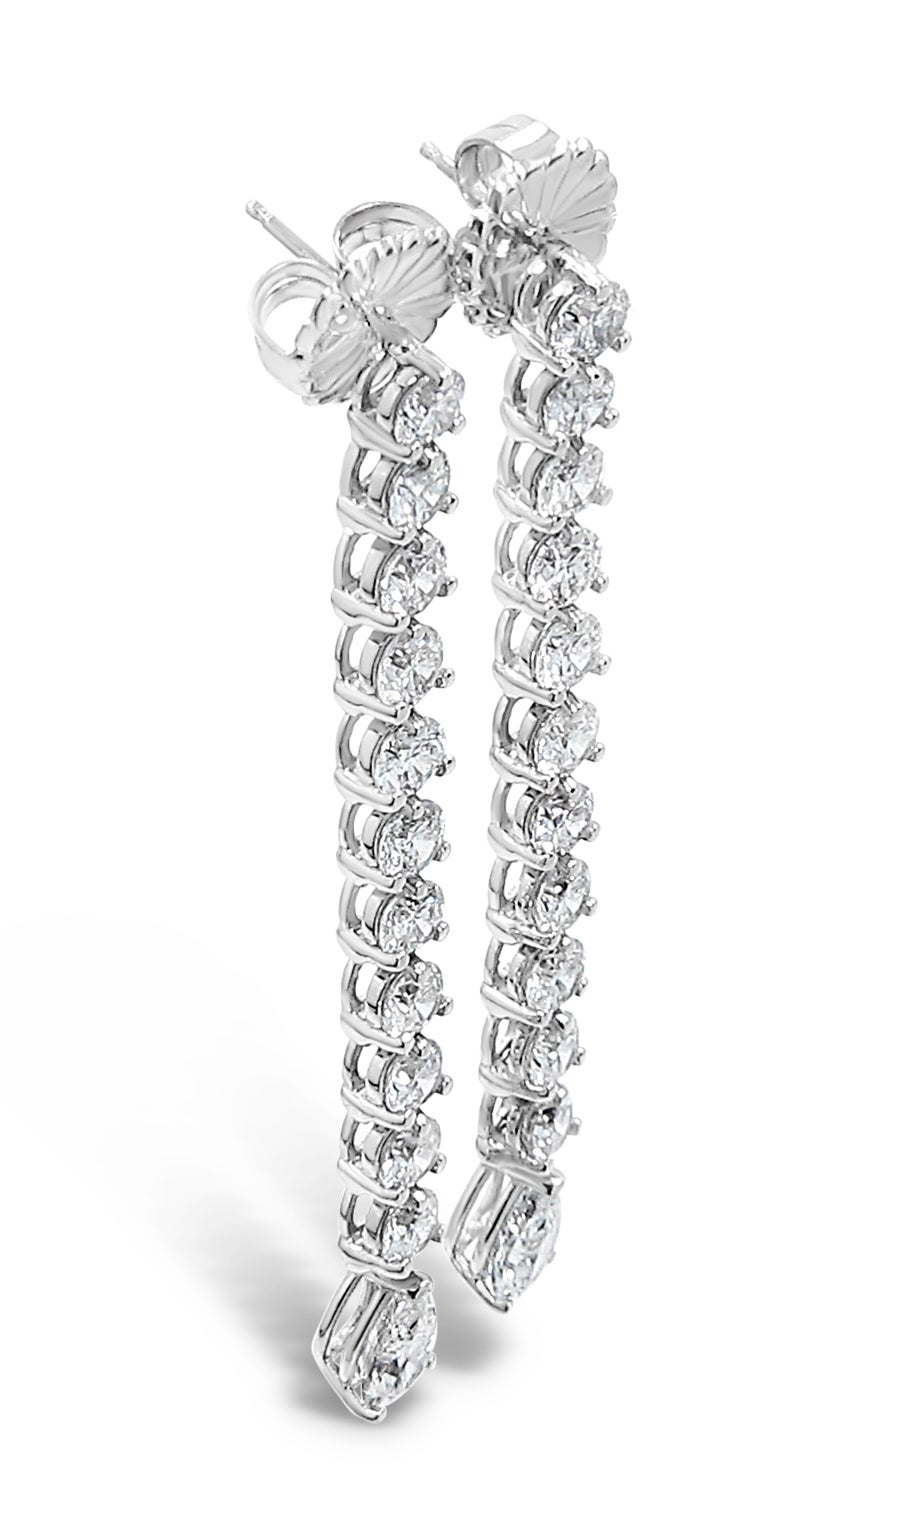 This pair of dangle earrings holds 22 round brilliant diamonds and 2 pear shape diamonds which equal approximately 7.50ctw. The matching round diamonds are all G-I in color and SI quality and set in a martini setting for maximum brilliance. Each